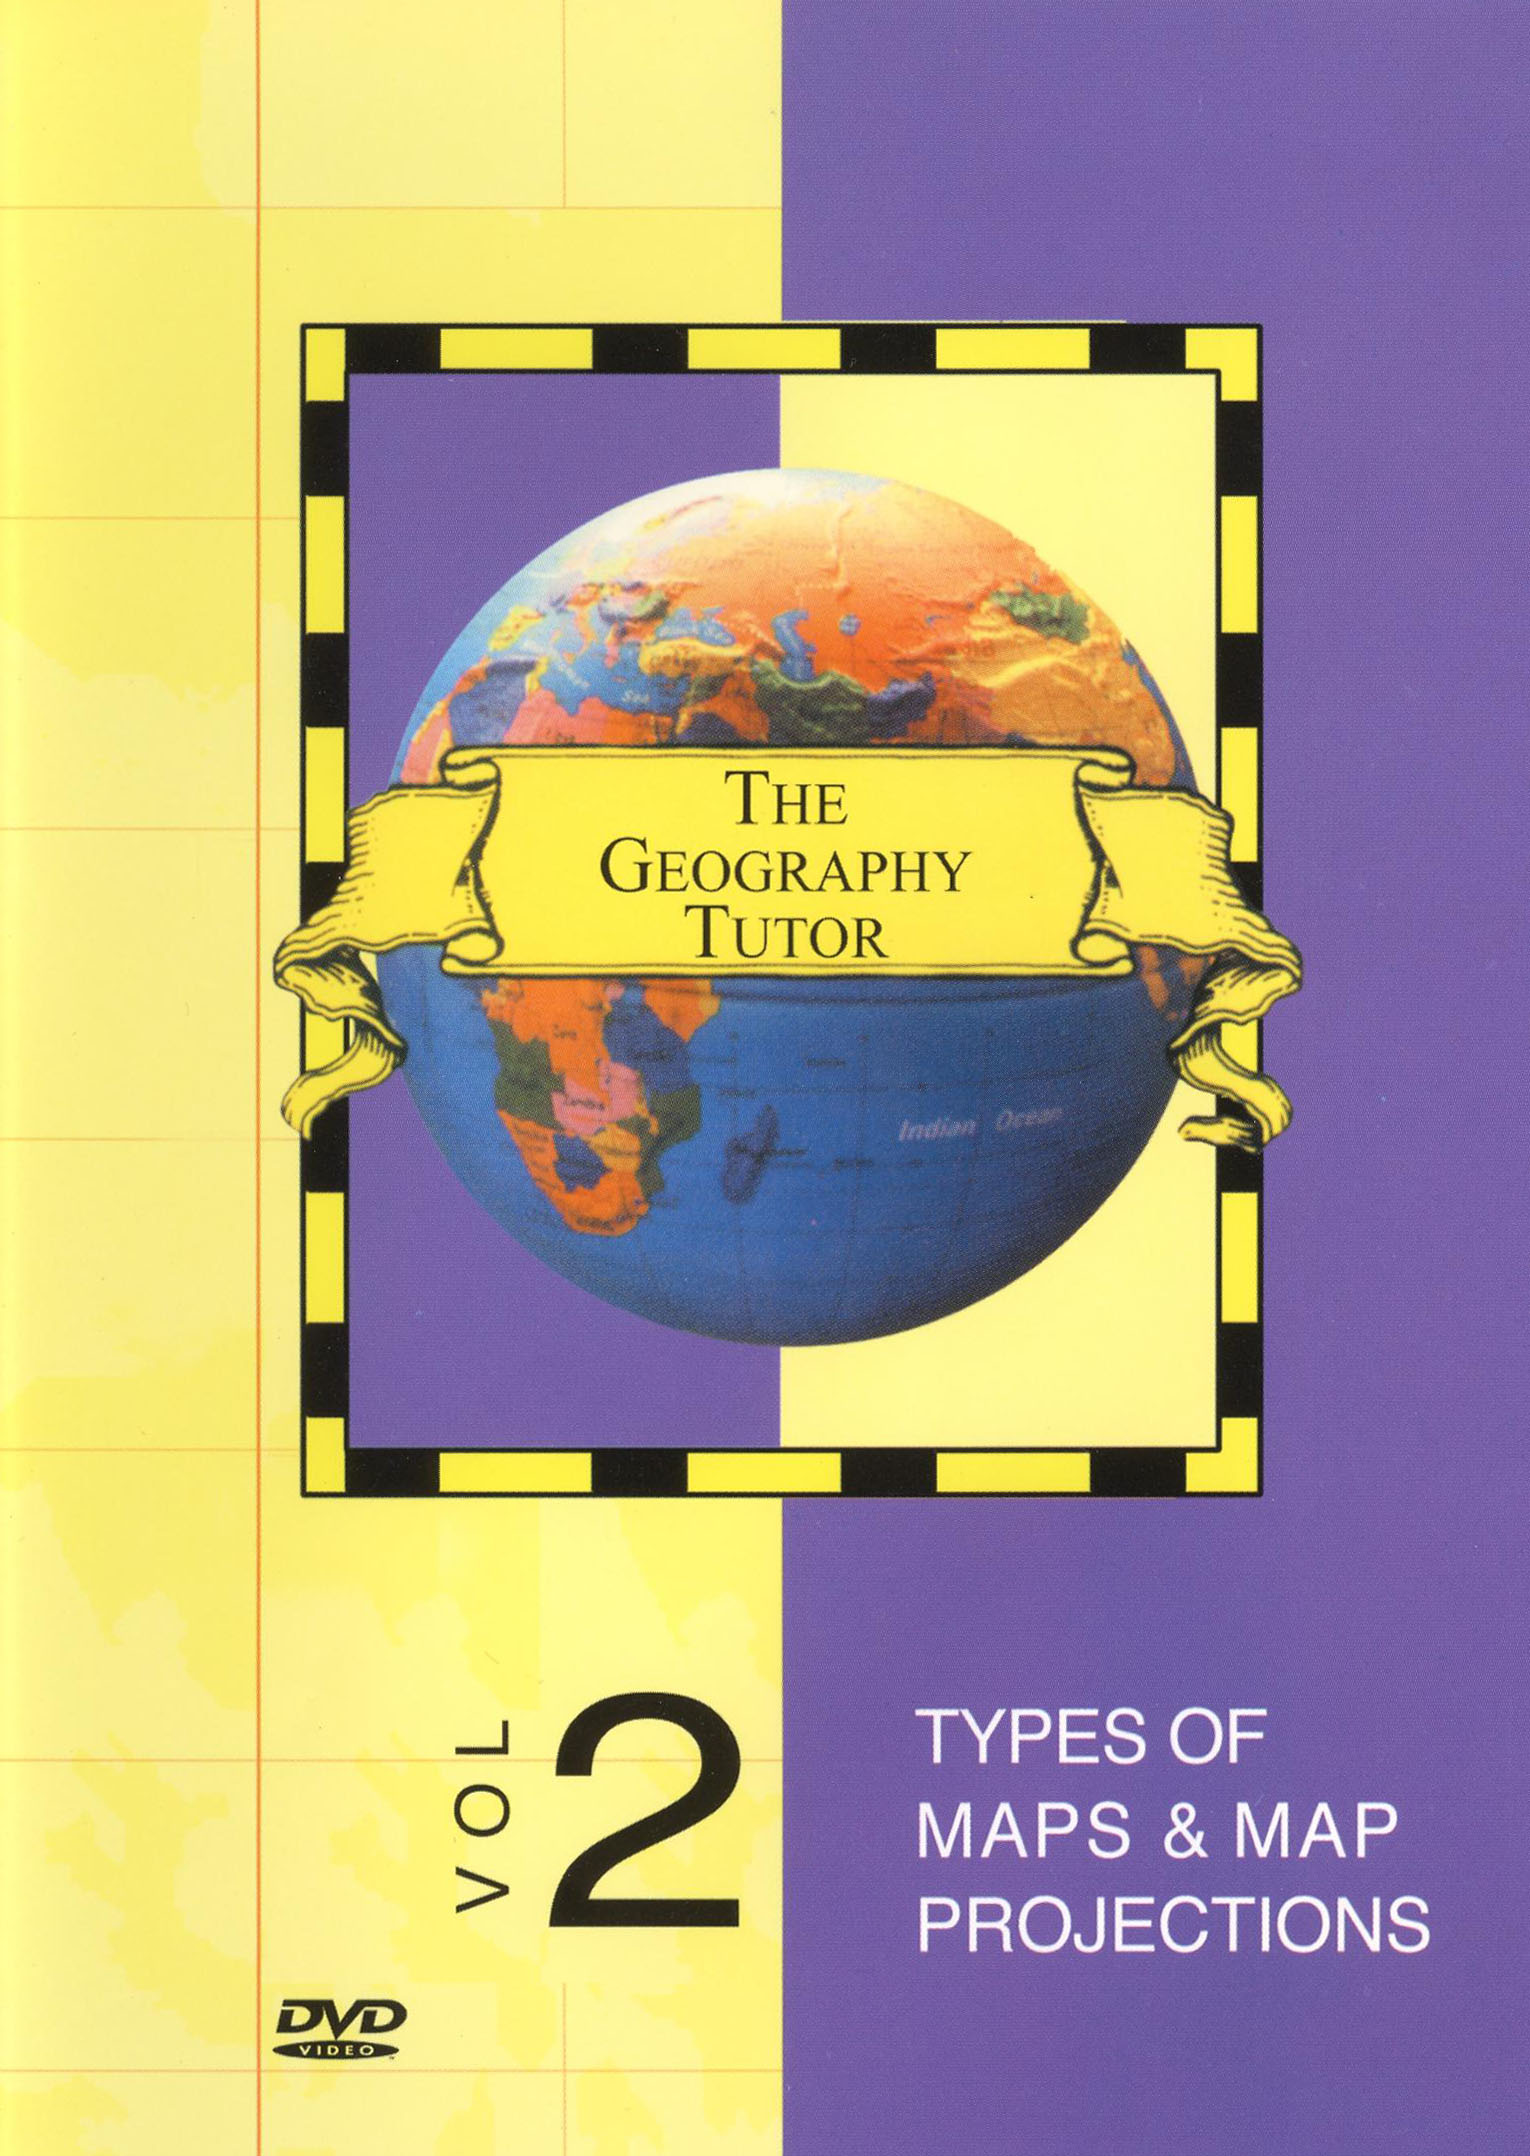 The Geography Tutor: Types of Maps